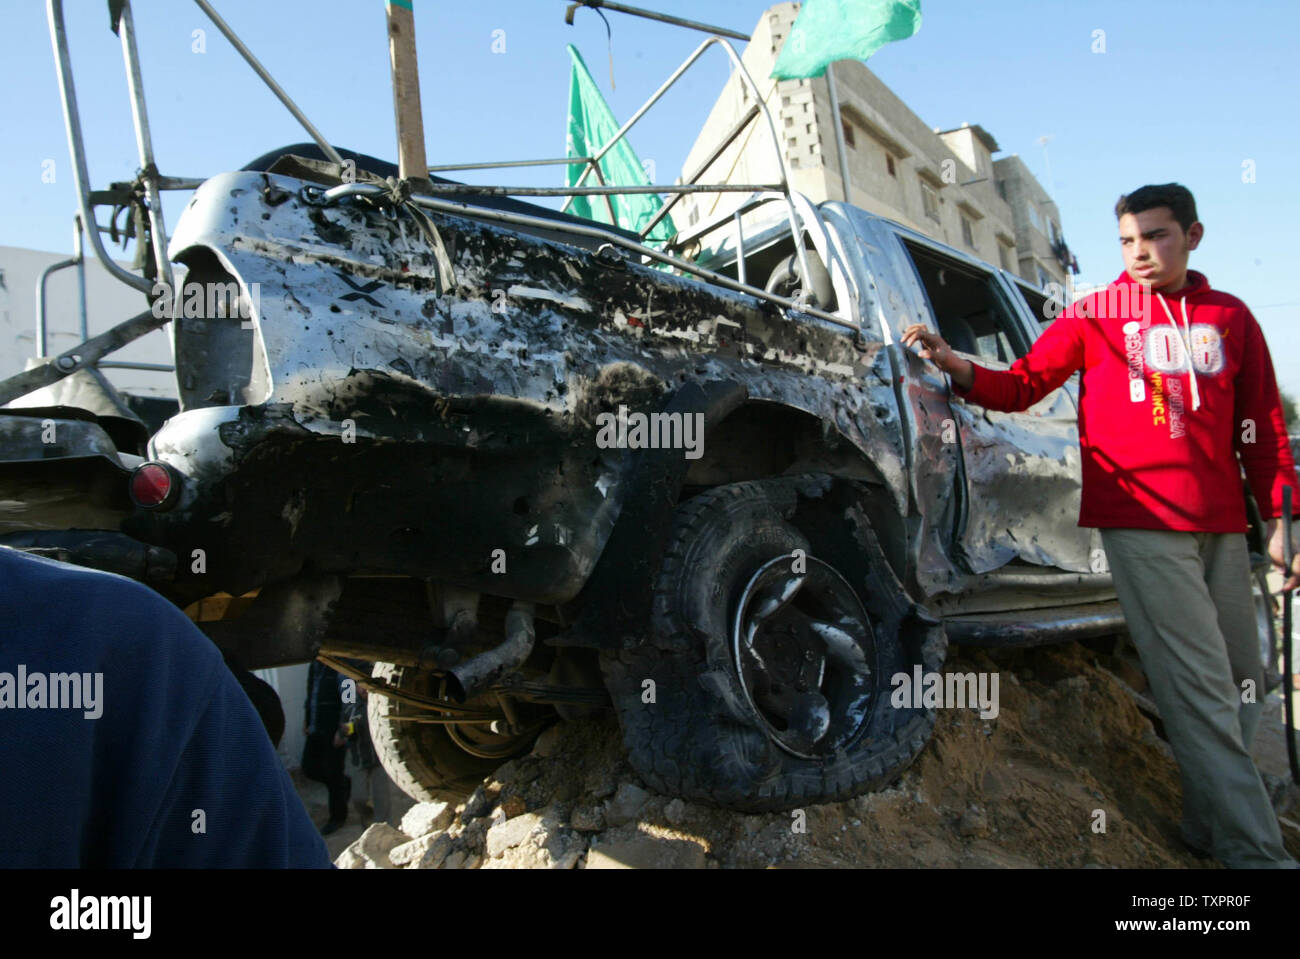 A Palestinian  look at a car belonging to the Hamas security forces which was damaged in a roadside bomb attack on Thursday in northern Gaza January 26 2007. Tensions rose in the Gaza Strip today after renewed clashes between the ruling Hamas movement and president Mahmud Abbas's Fatah party killed six people in less than a day.(UPI Photo/Ismael Mohamad) - Stock Image